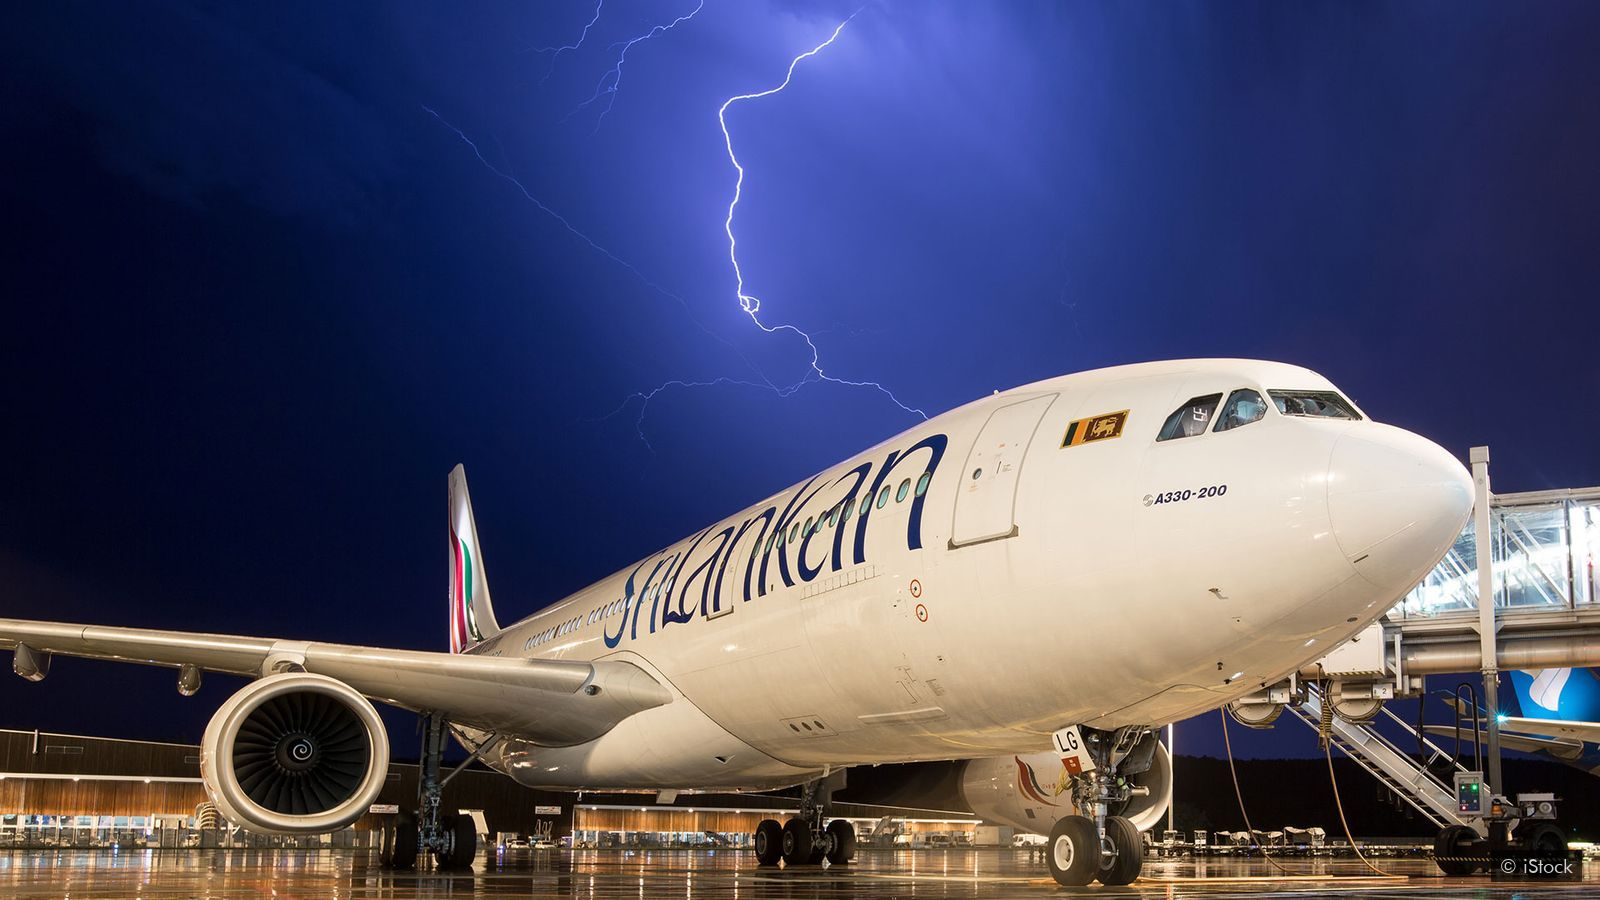 Picture of Sri Lankan Airbus A330 Lightning strike